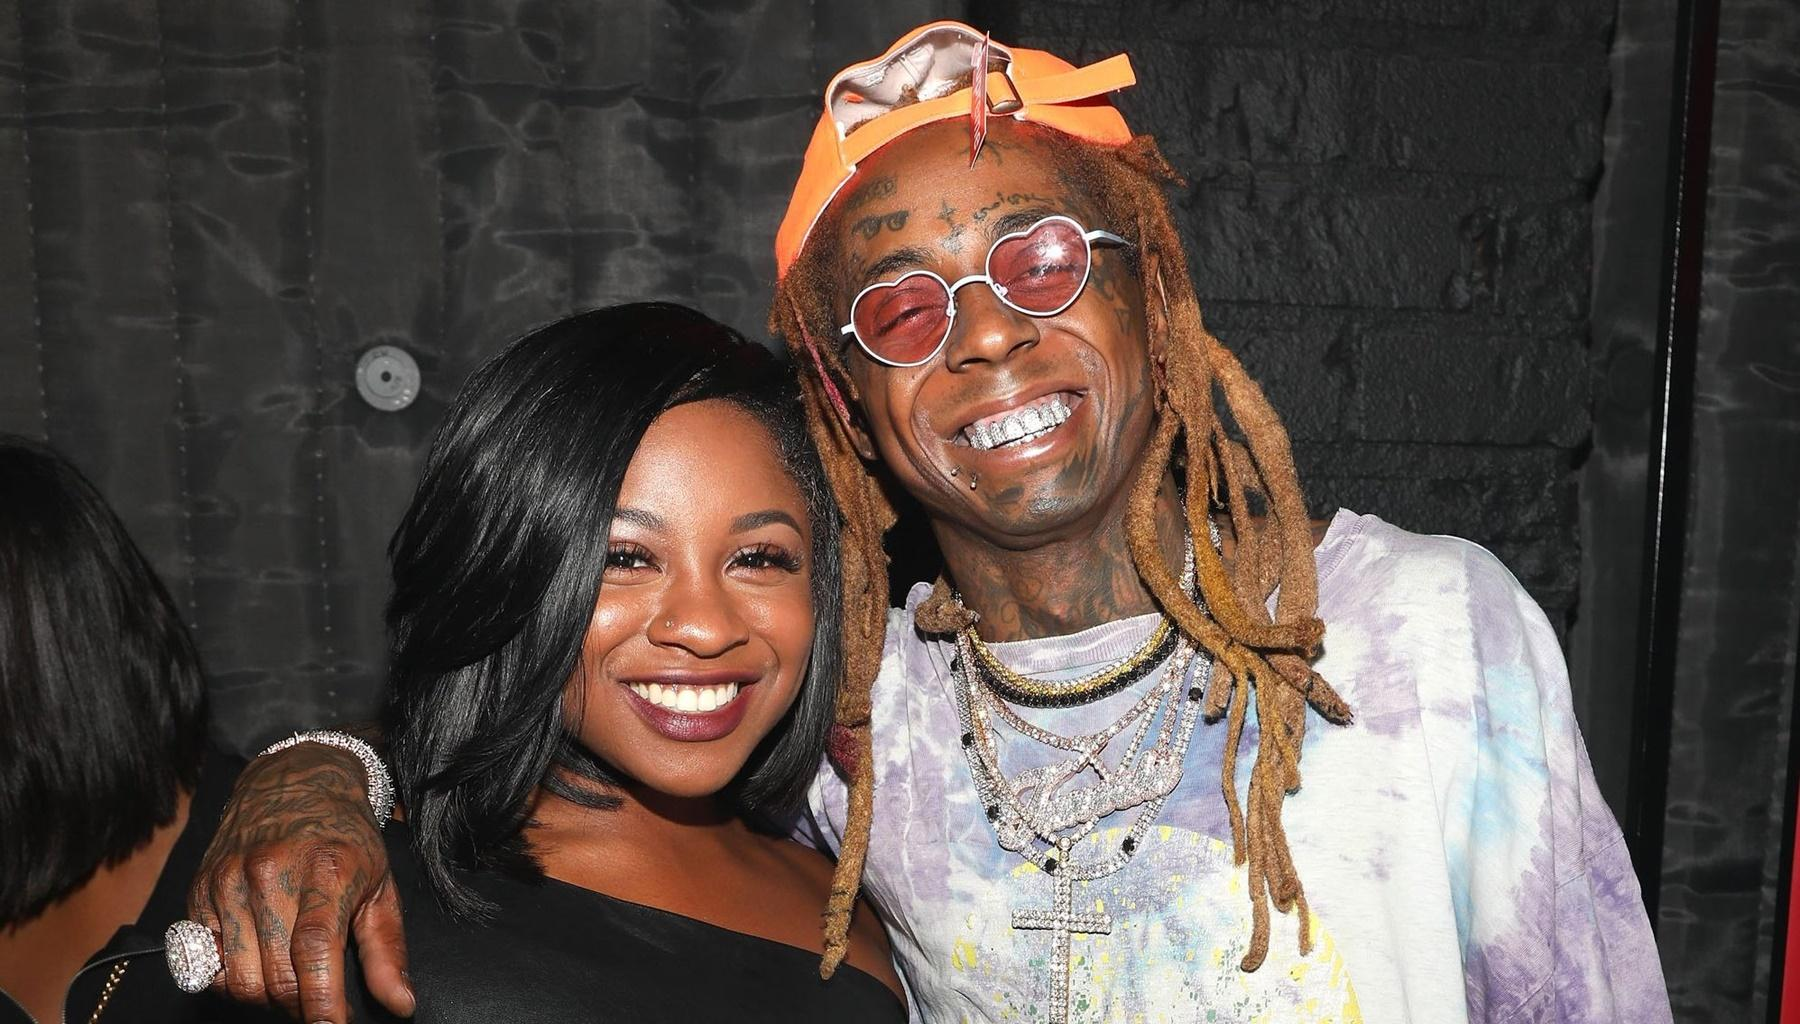 Lil Wayne's Daughter, Reginae Carter, Shares Video Of Rapper Killing It On Stage And Calls Out Her Little Brothers, Neal Carter And Dwayne Carter III, For Not Doing Their Jobs